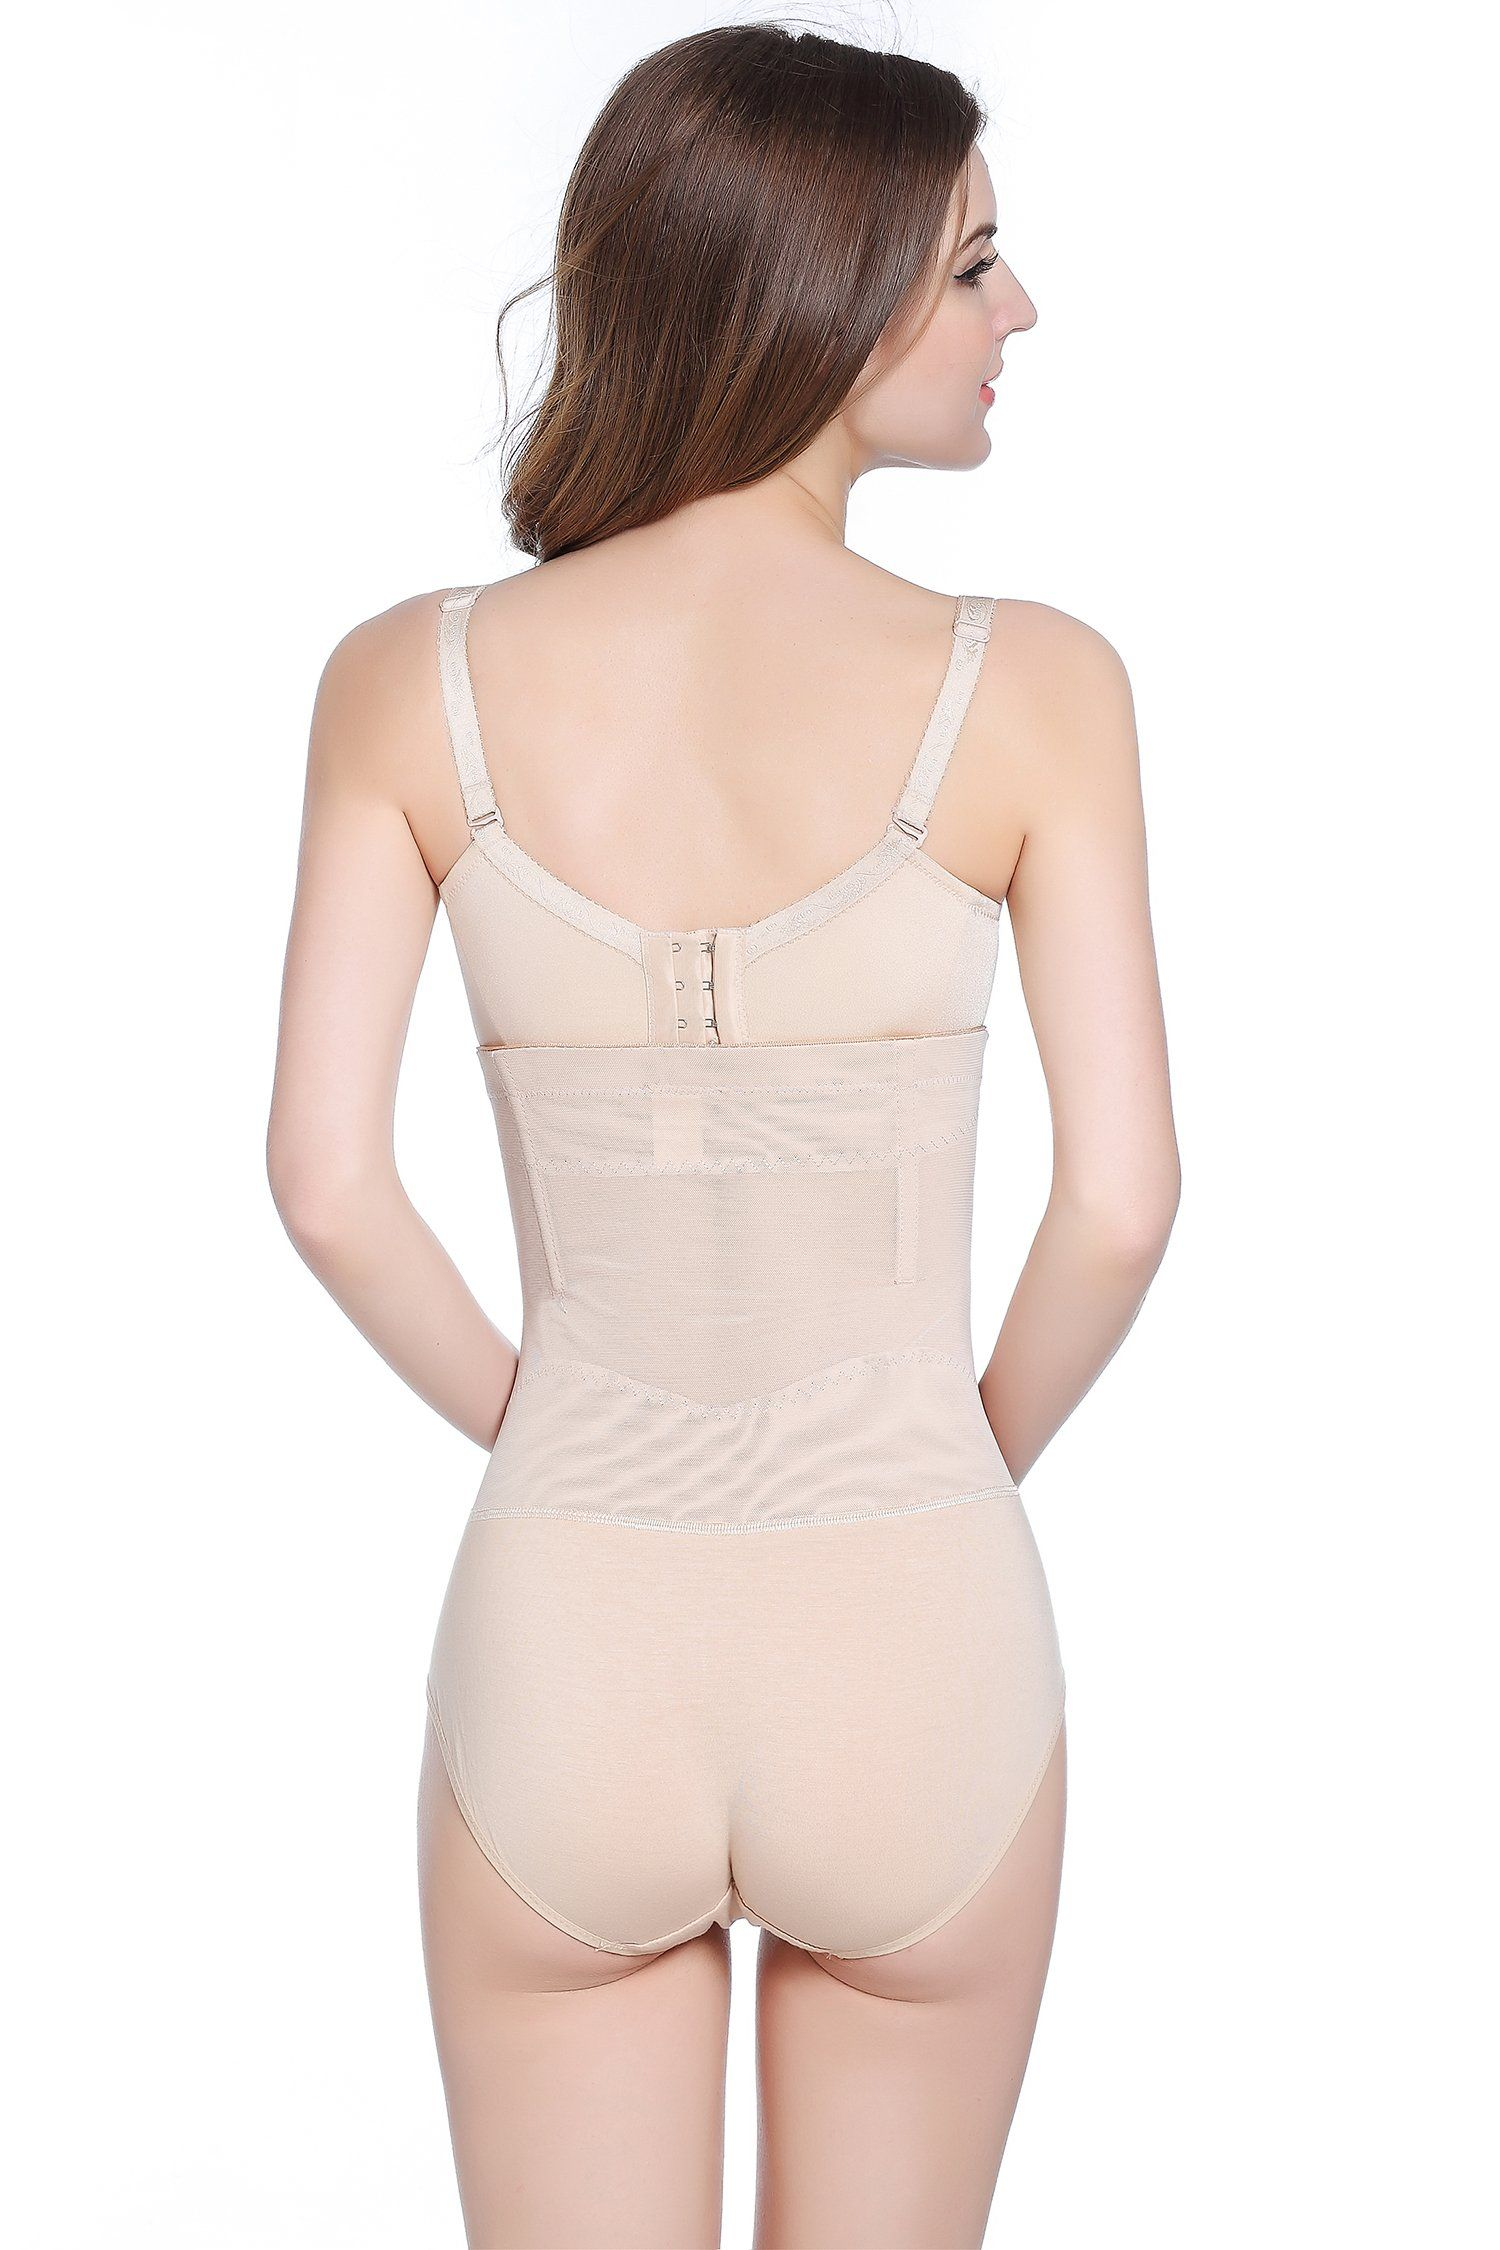 2a4583967 cool nik Plus Size Tummy Control Panties Womens Shapewear HiWaist Full  Brief Firm Control Tummy Slimming Beige 3XLarge   Check out this great  product.